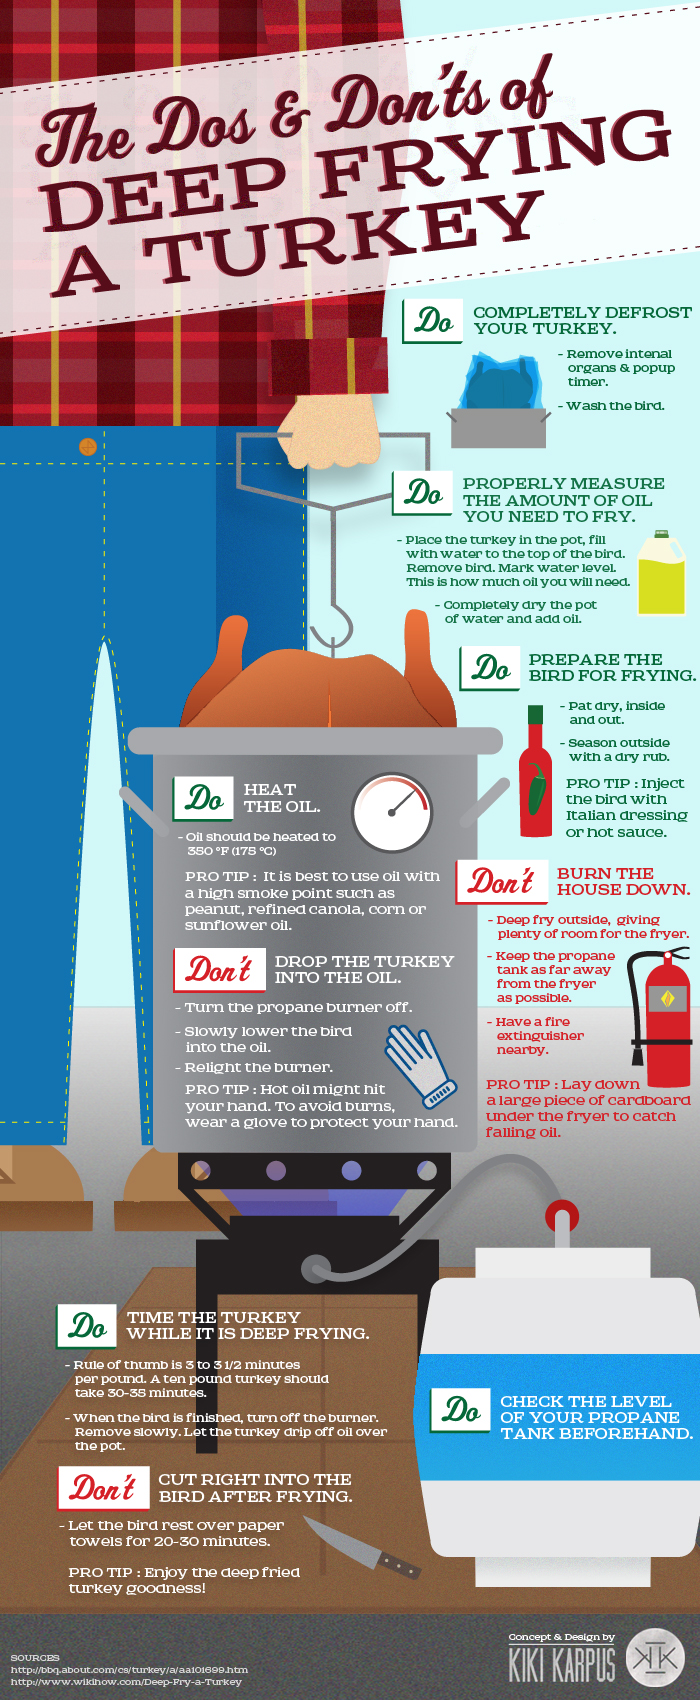 Infographic: The Dos And Don'ts Of Deep Frying A Turkey